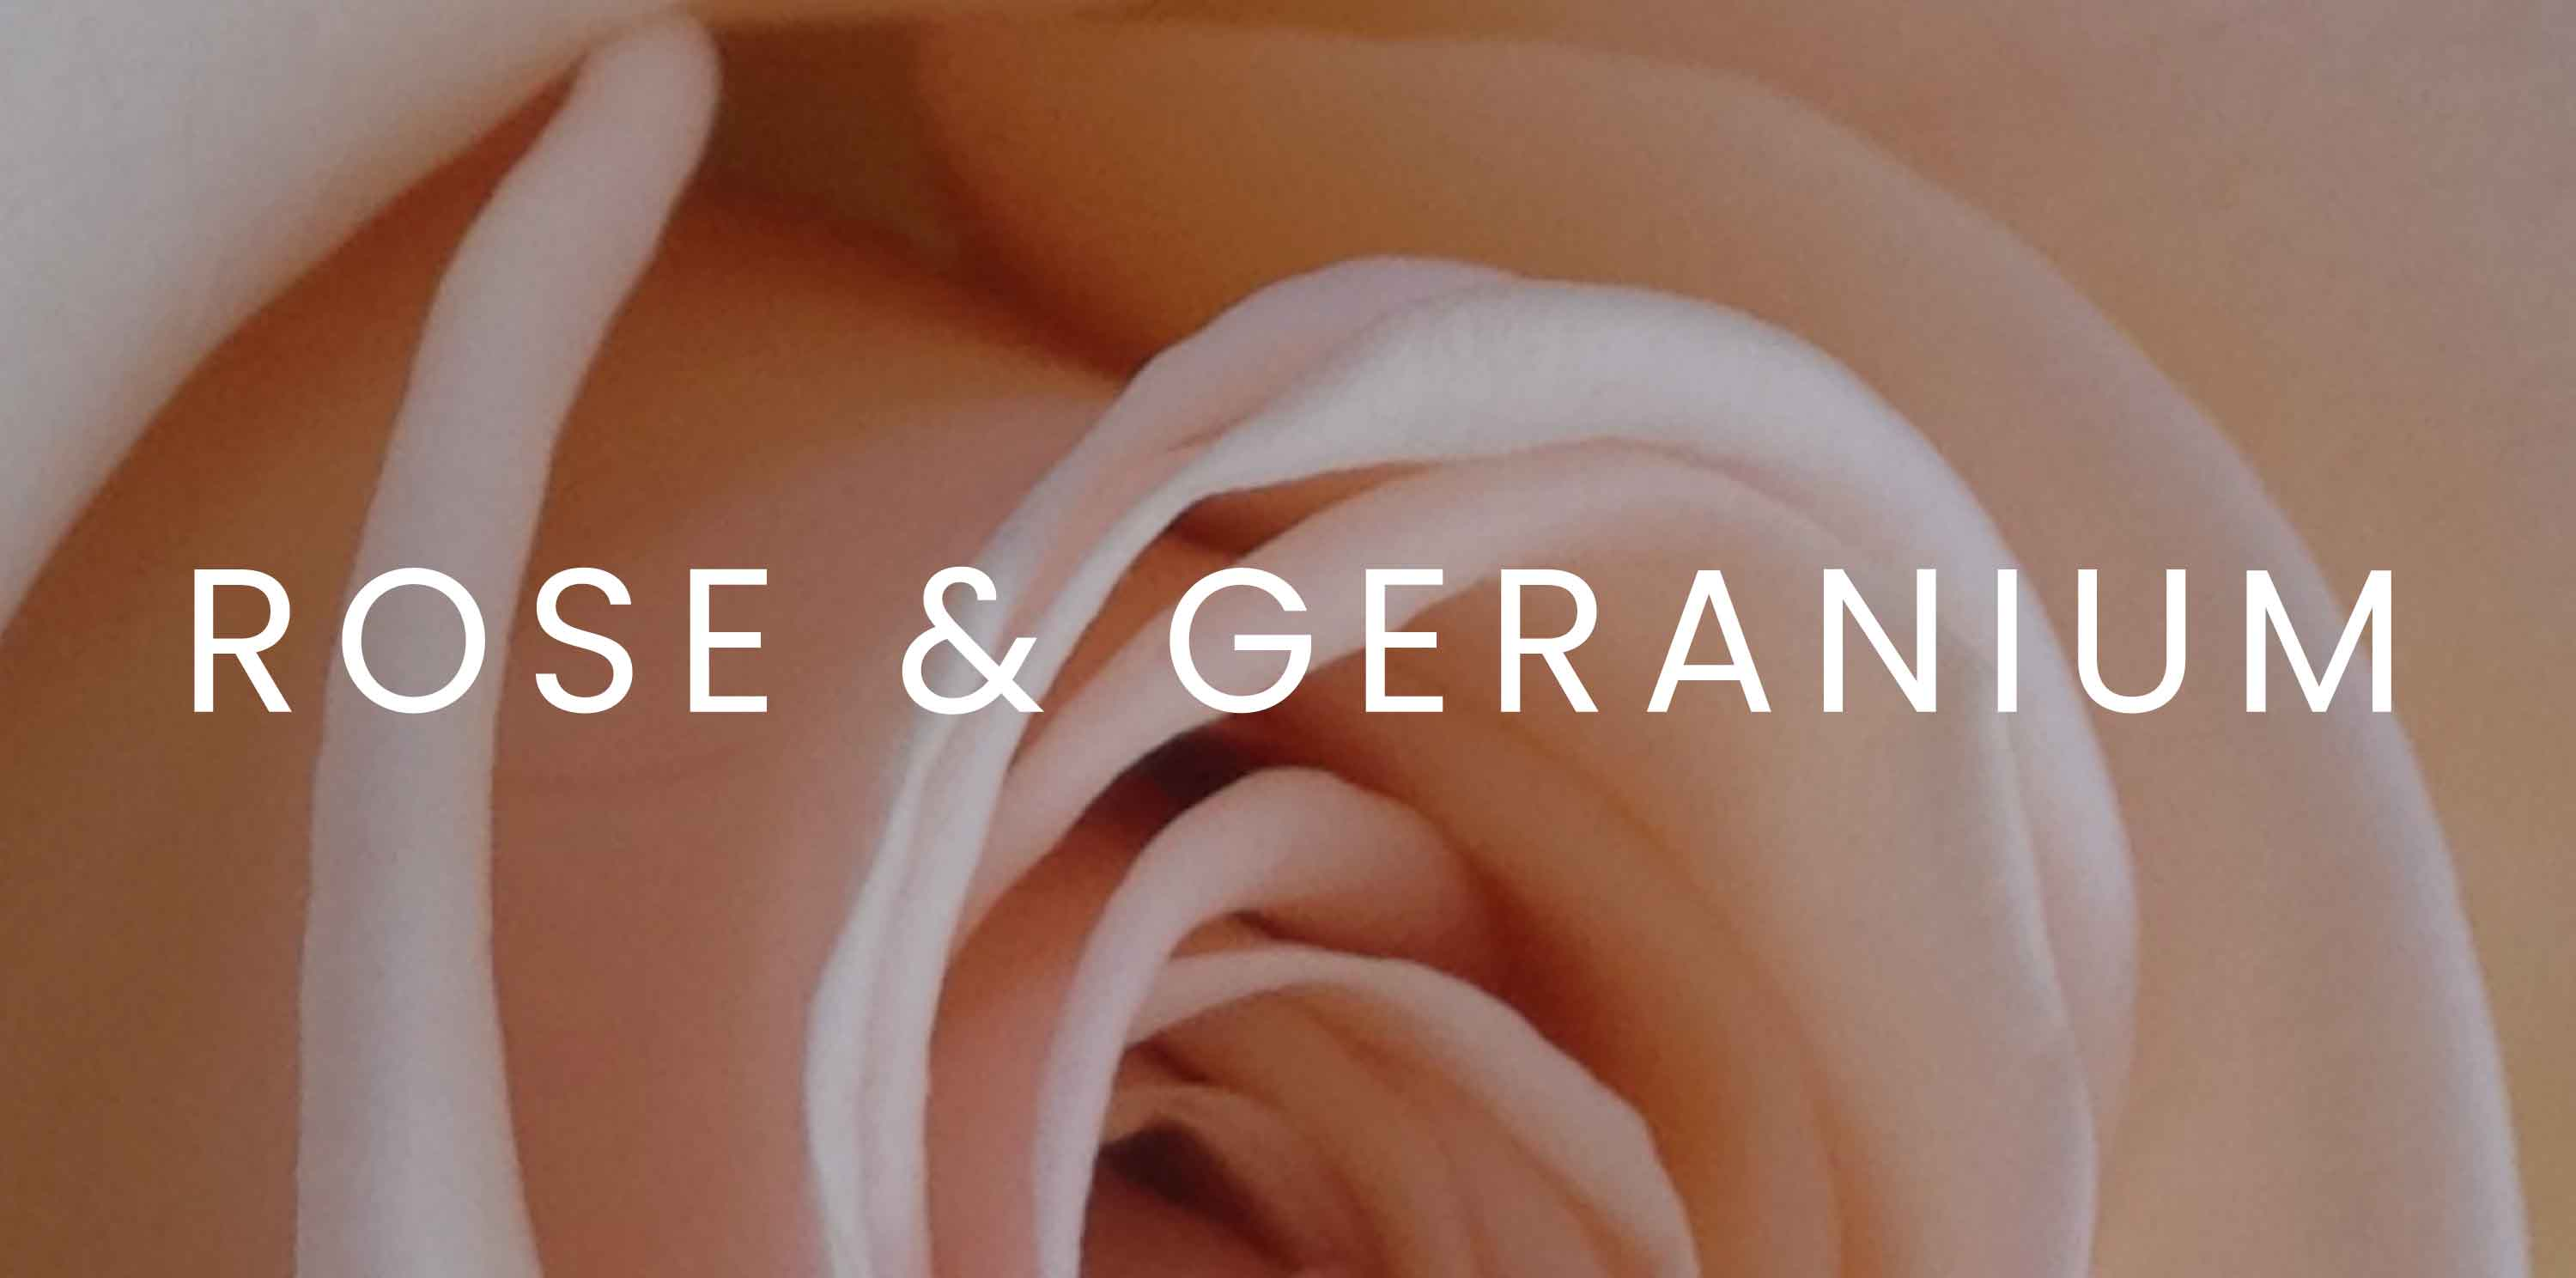 Shop rose & geranium